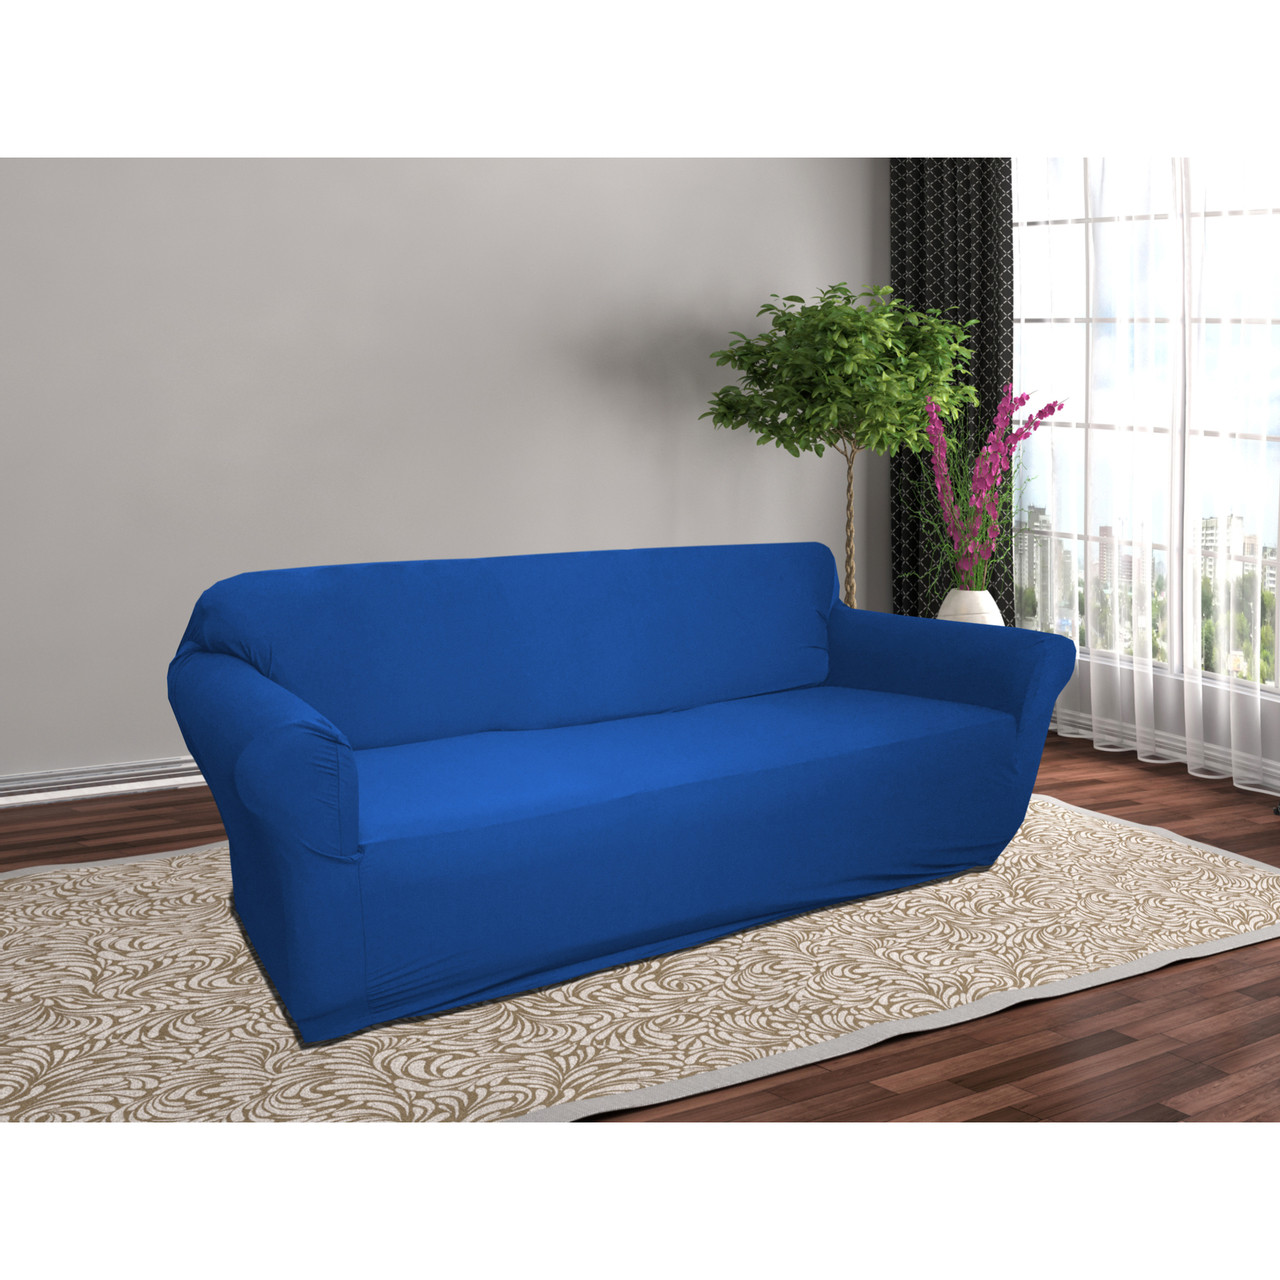 Furniture Couch Cover Linen Store Stretch Jersey Slipcover Soft